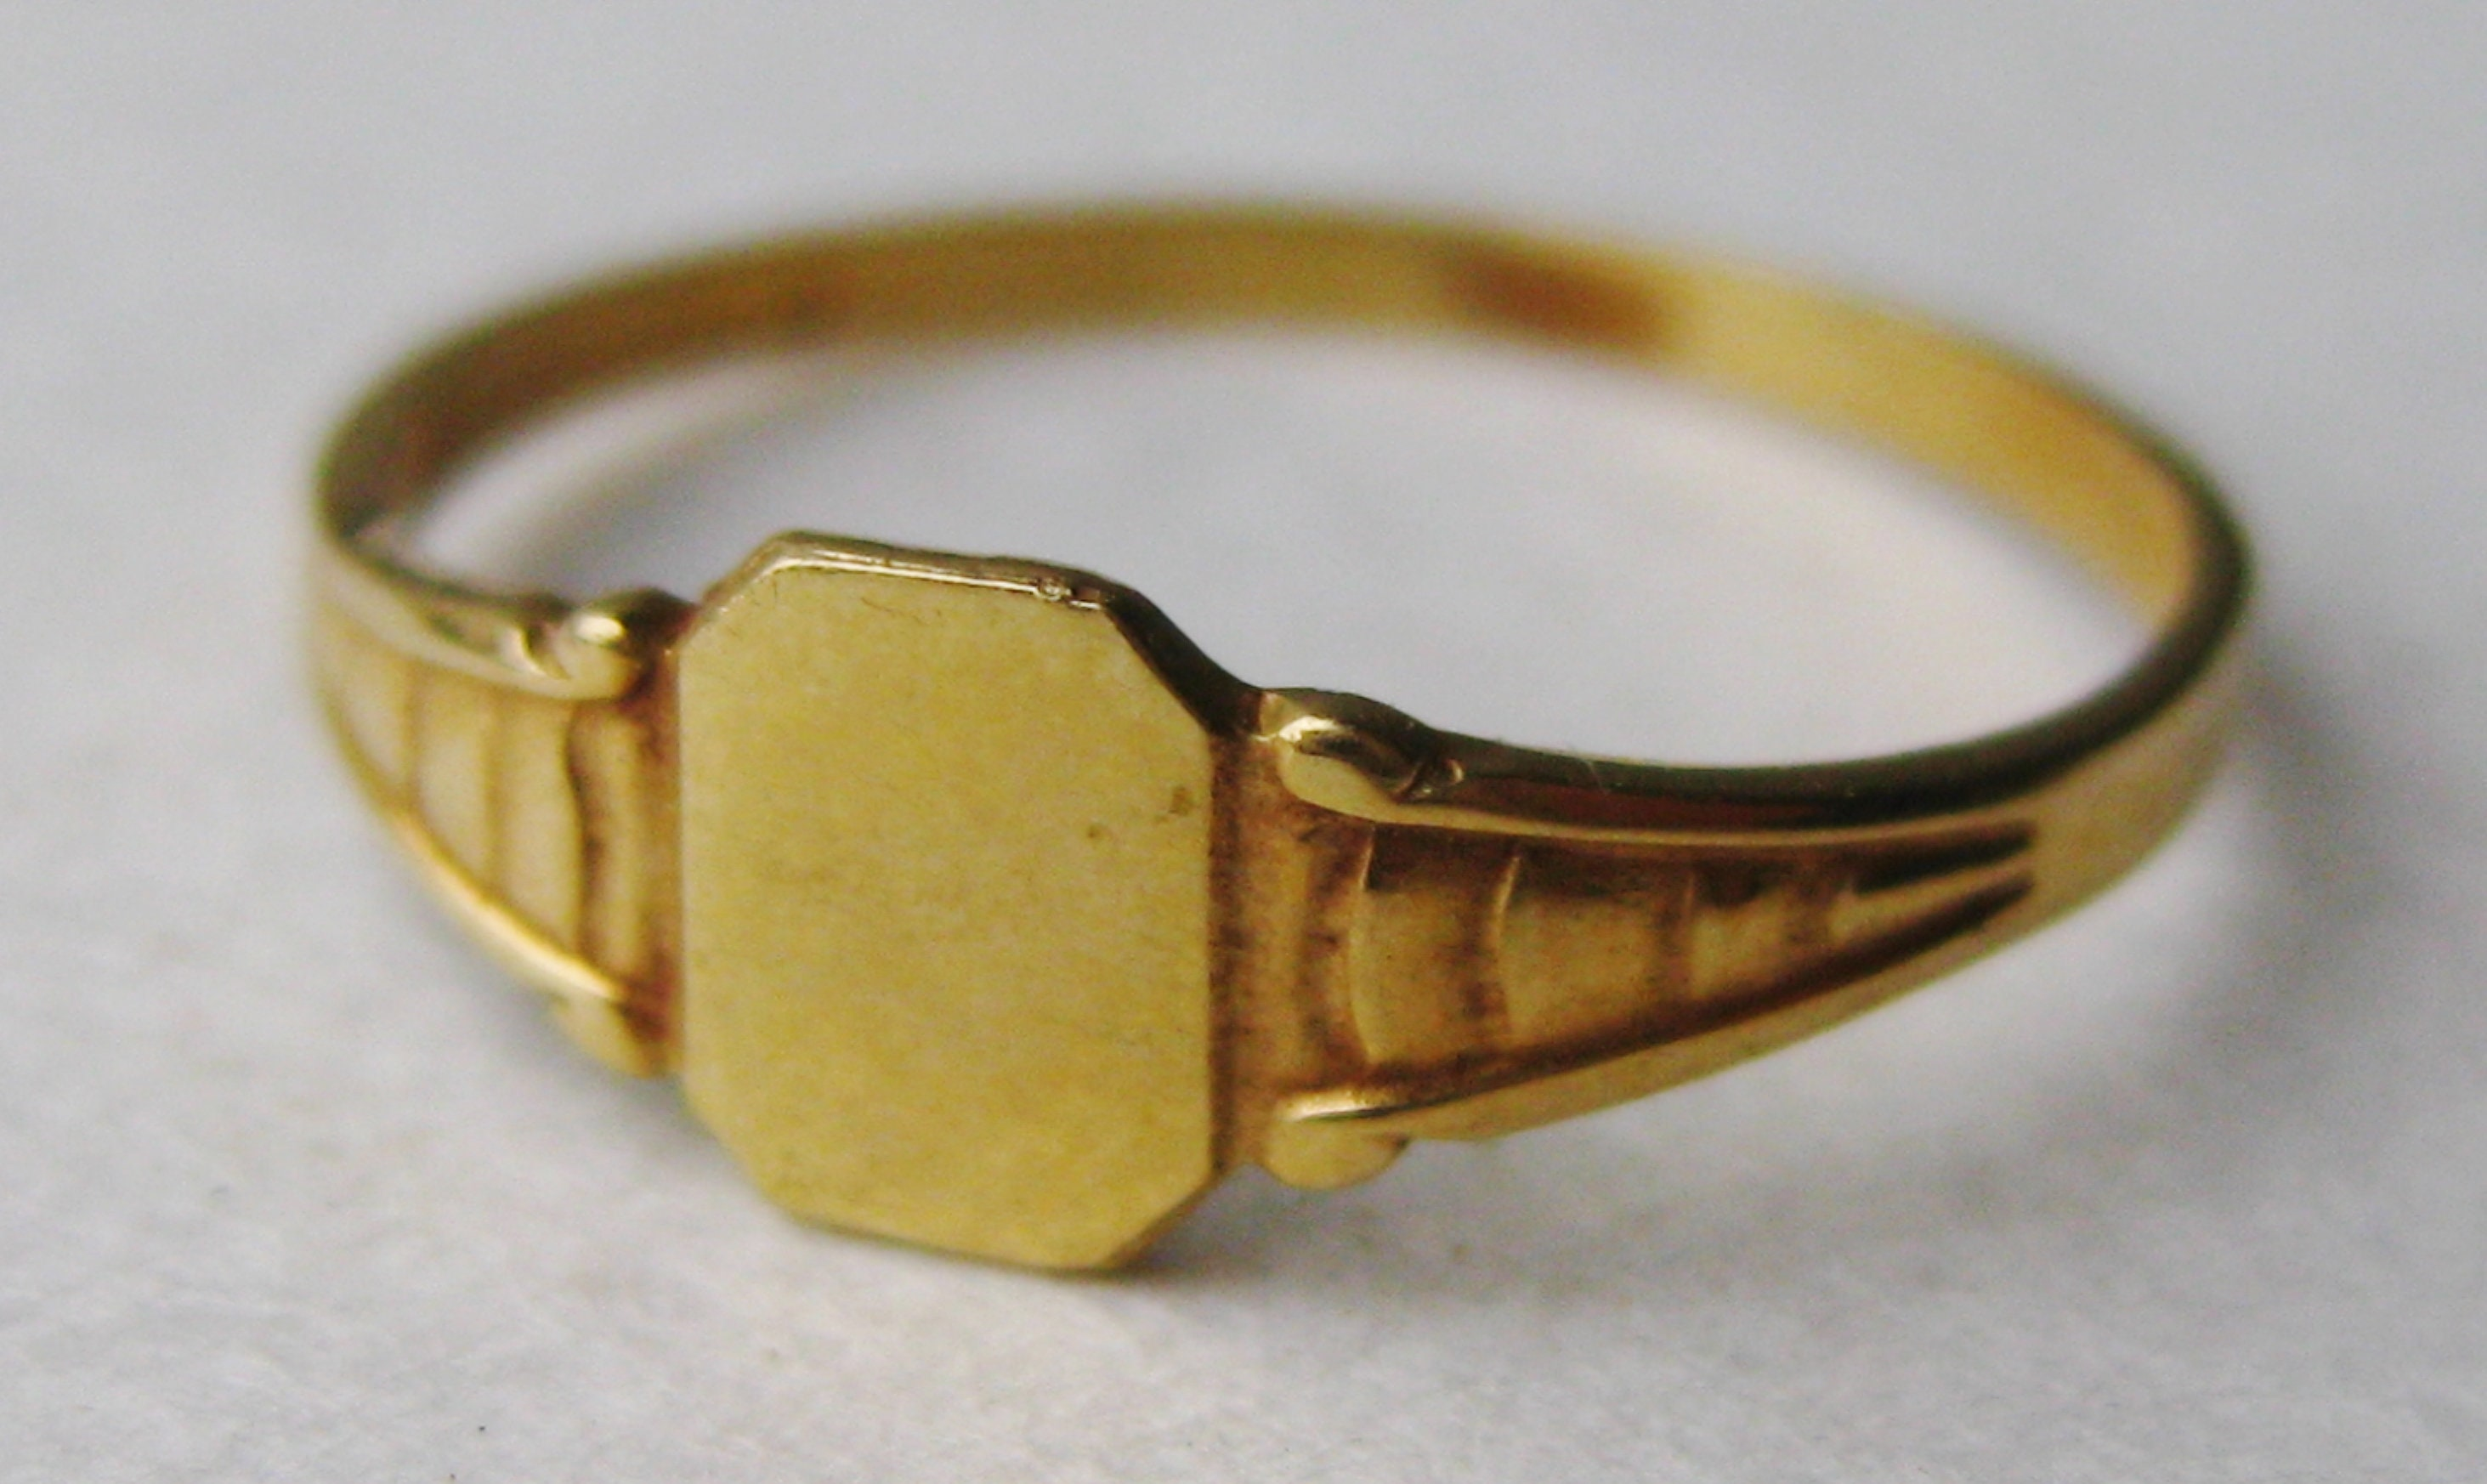 Vintage 14k Gold Baby Ring Infant Band Ring Size 2 Etsy